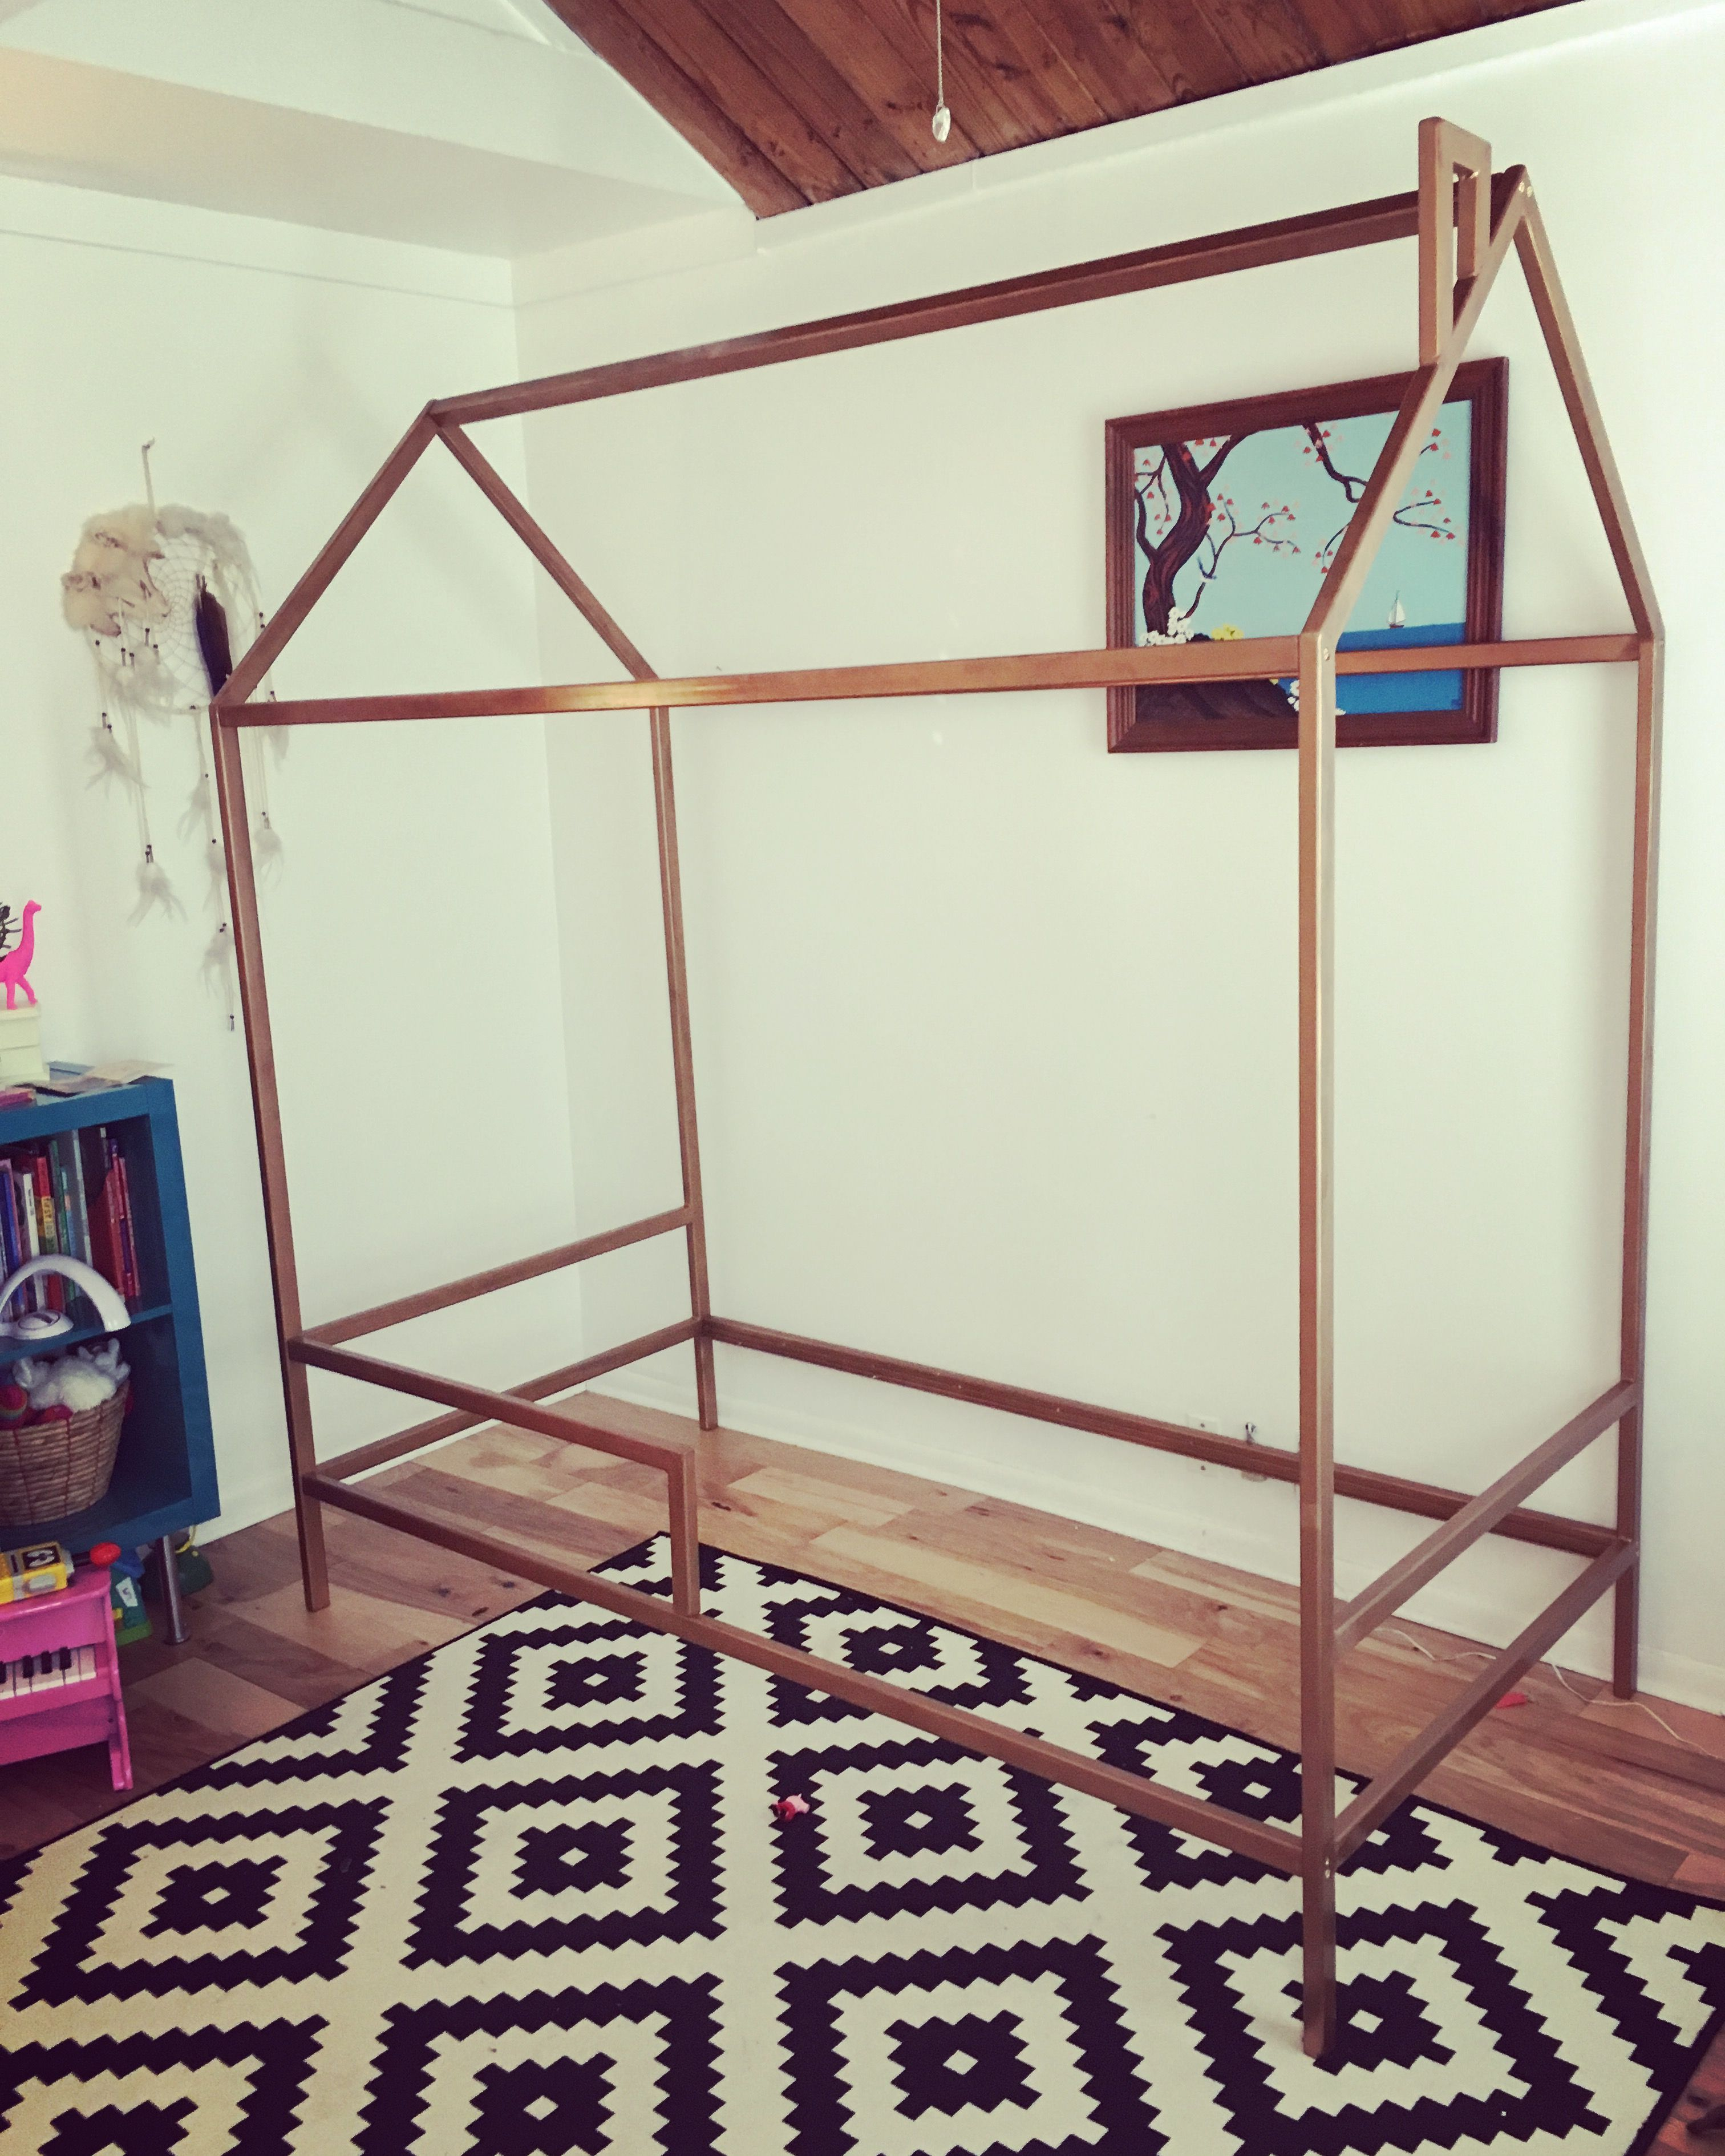 Modern House Twin Bed Frame Welded Metal For A Size Painted